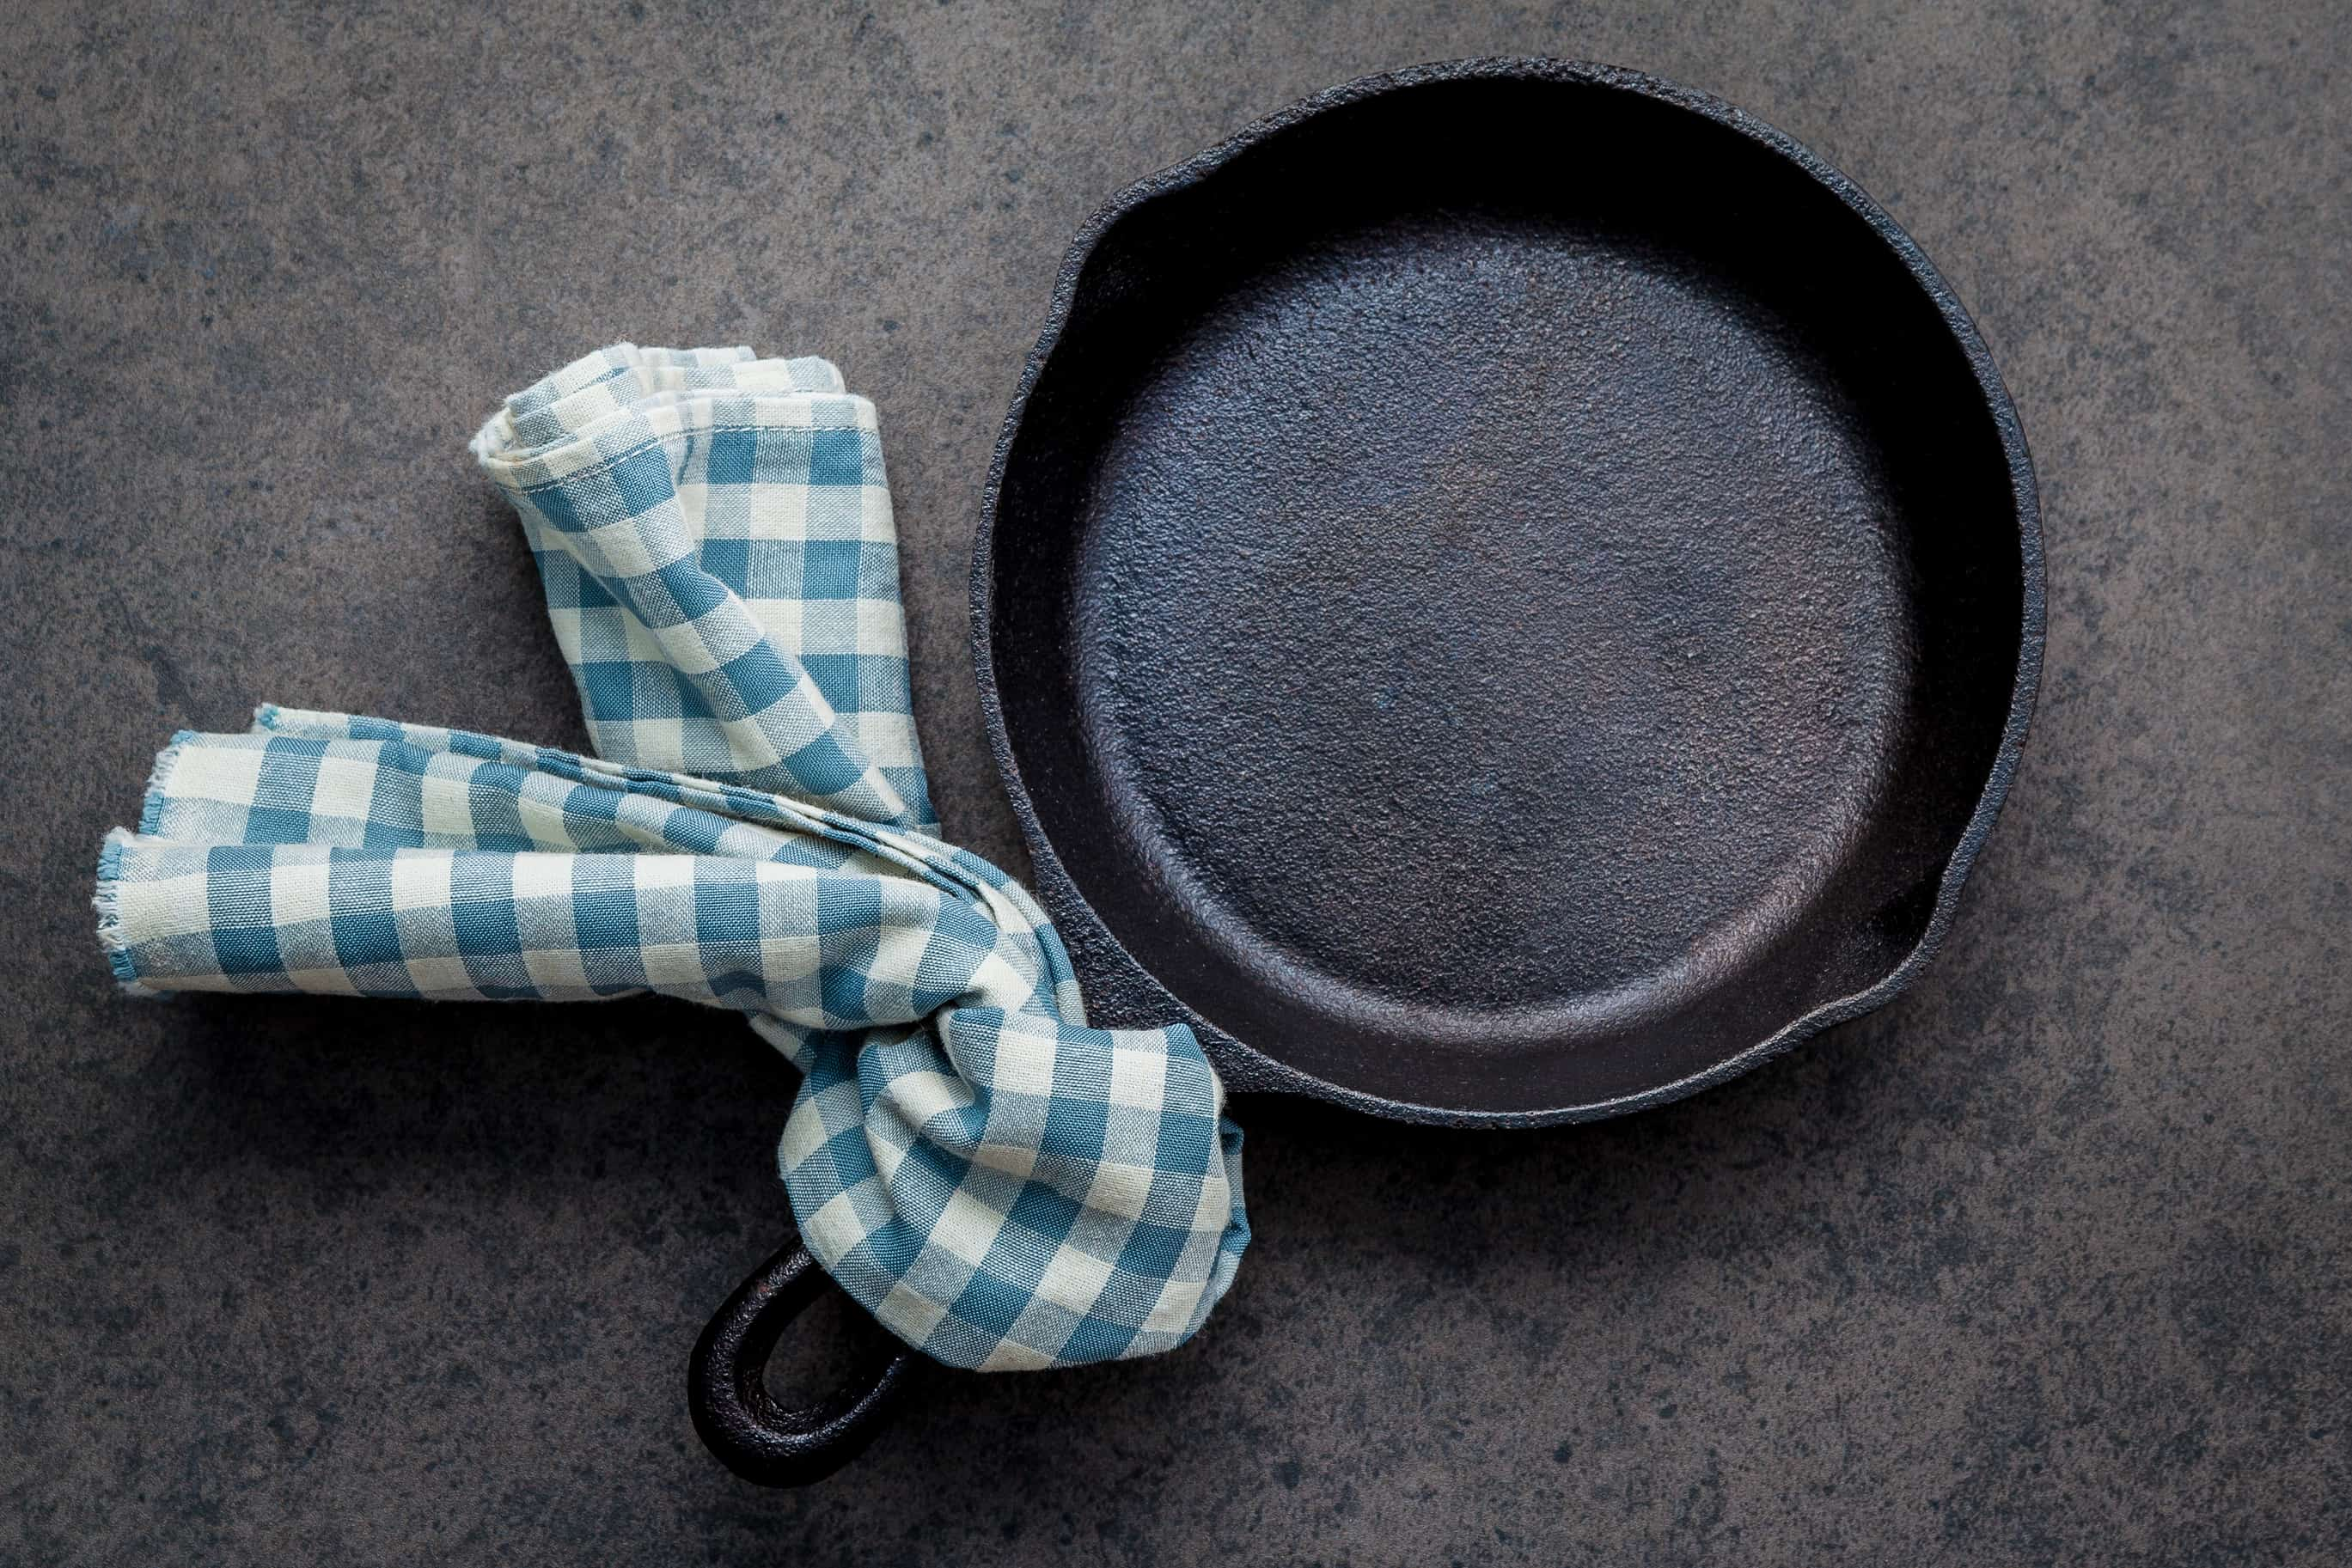 How to clean cast iron cookware in easy steps, plus how to care for and maintain cast iron to make the most of your seasoning and prevent rust! #howtocleancastiron #howtoremoverustfromcastiron www.savoryexperiments.com